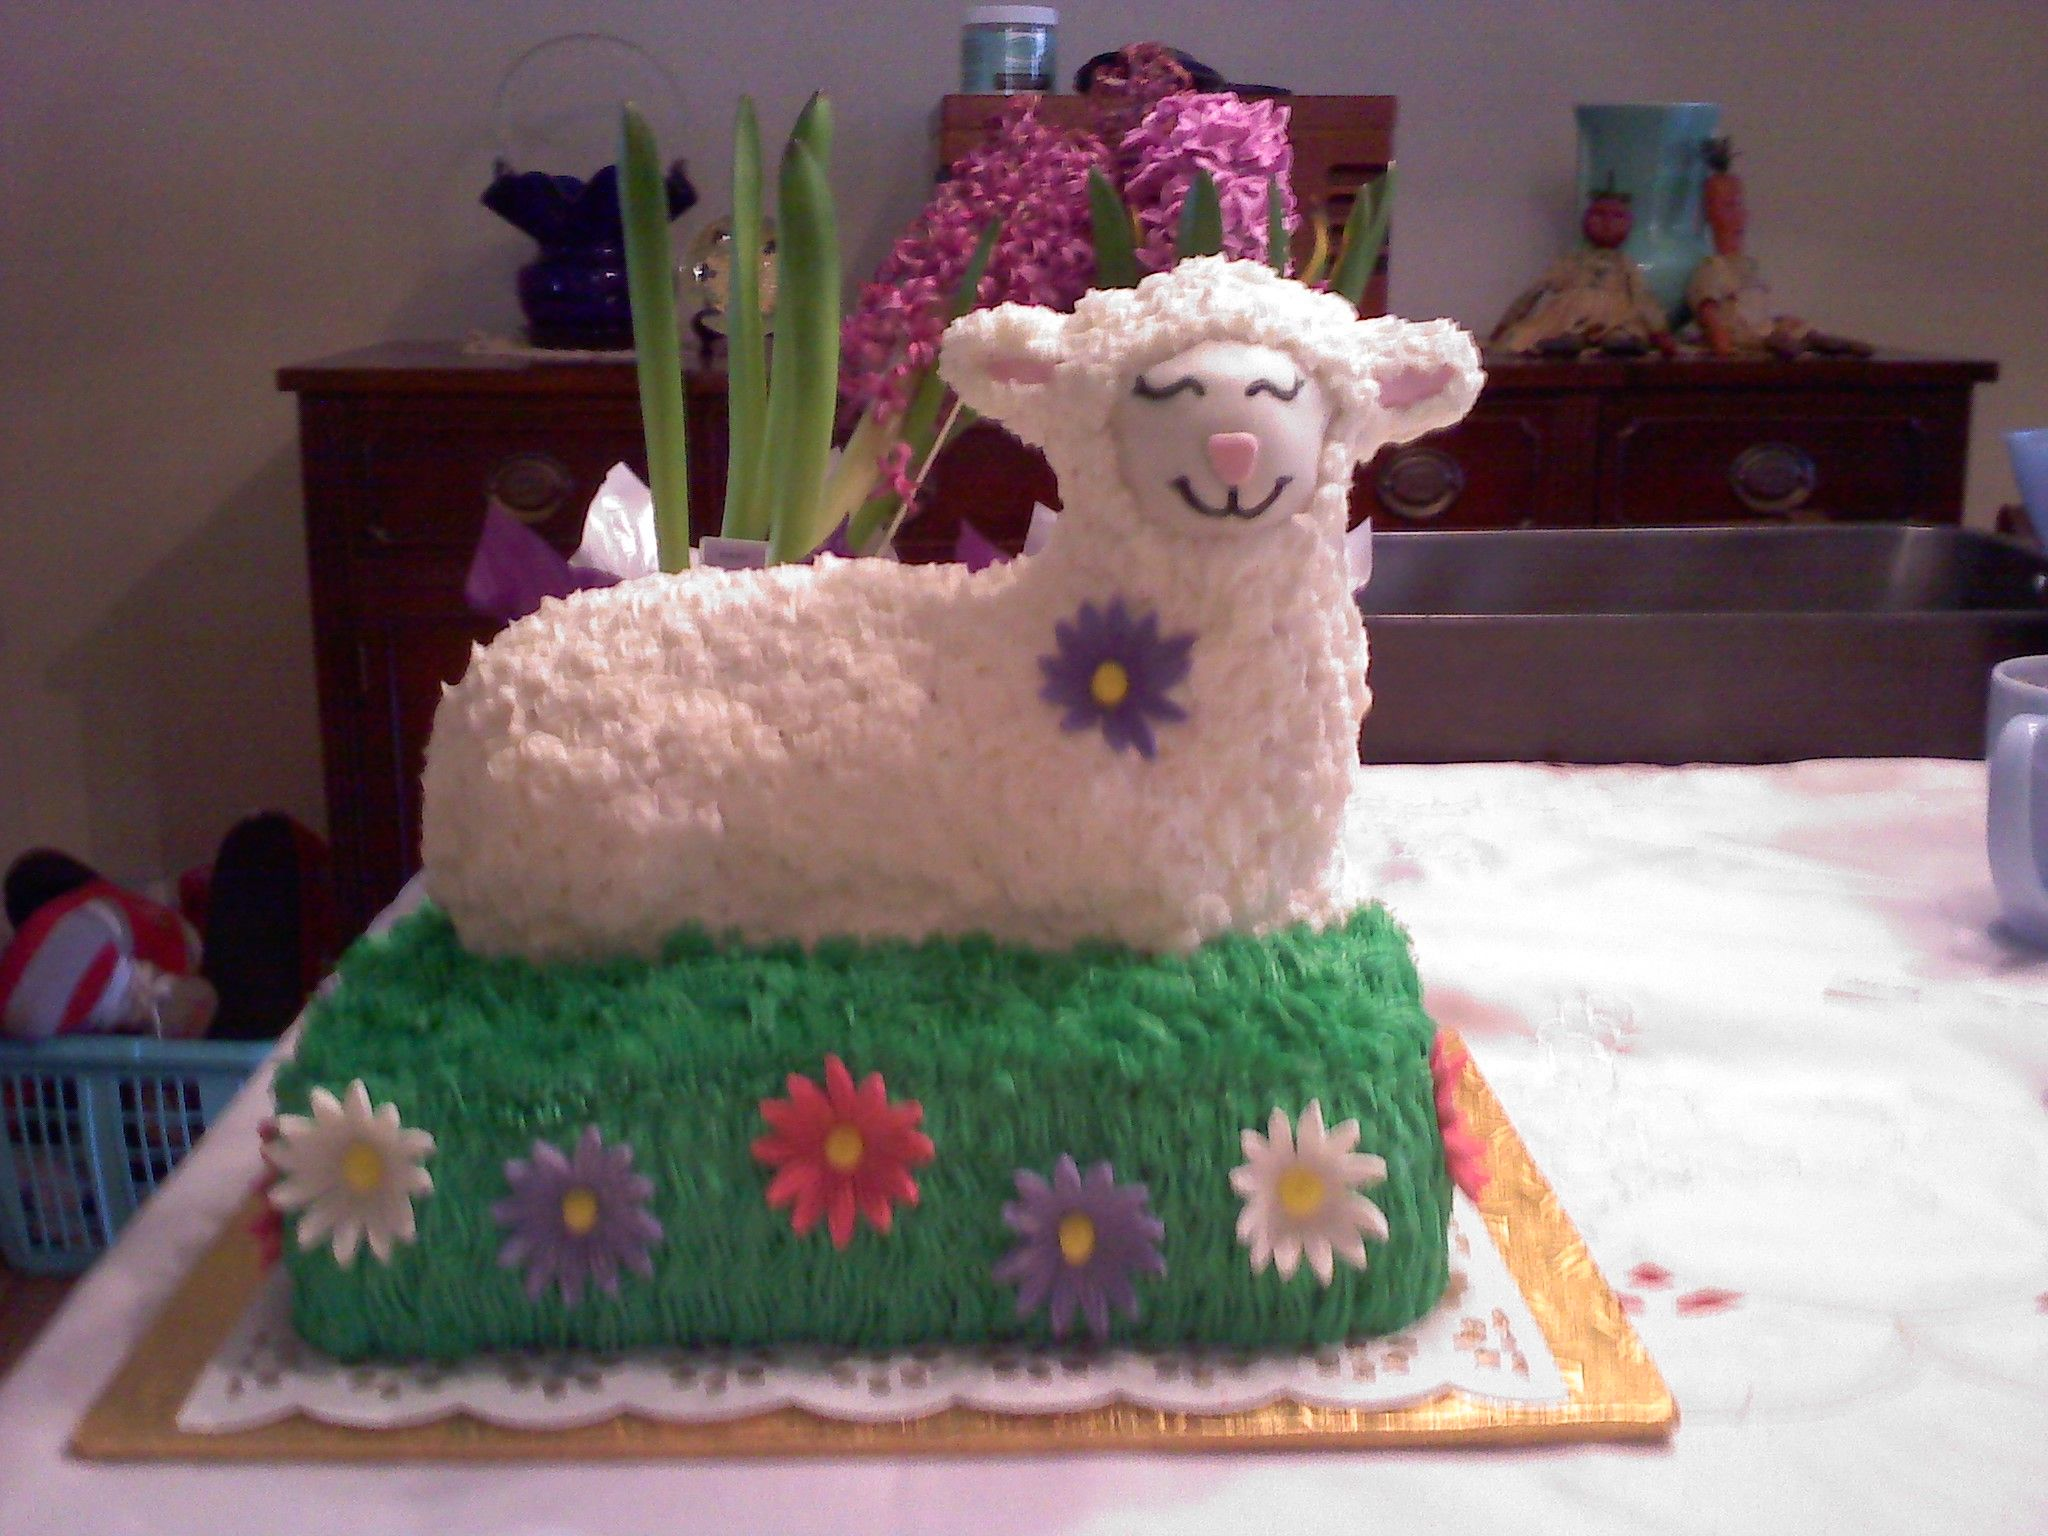 Easter lamb cake with a twisti baked a traditional lamb